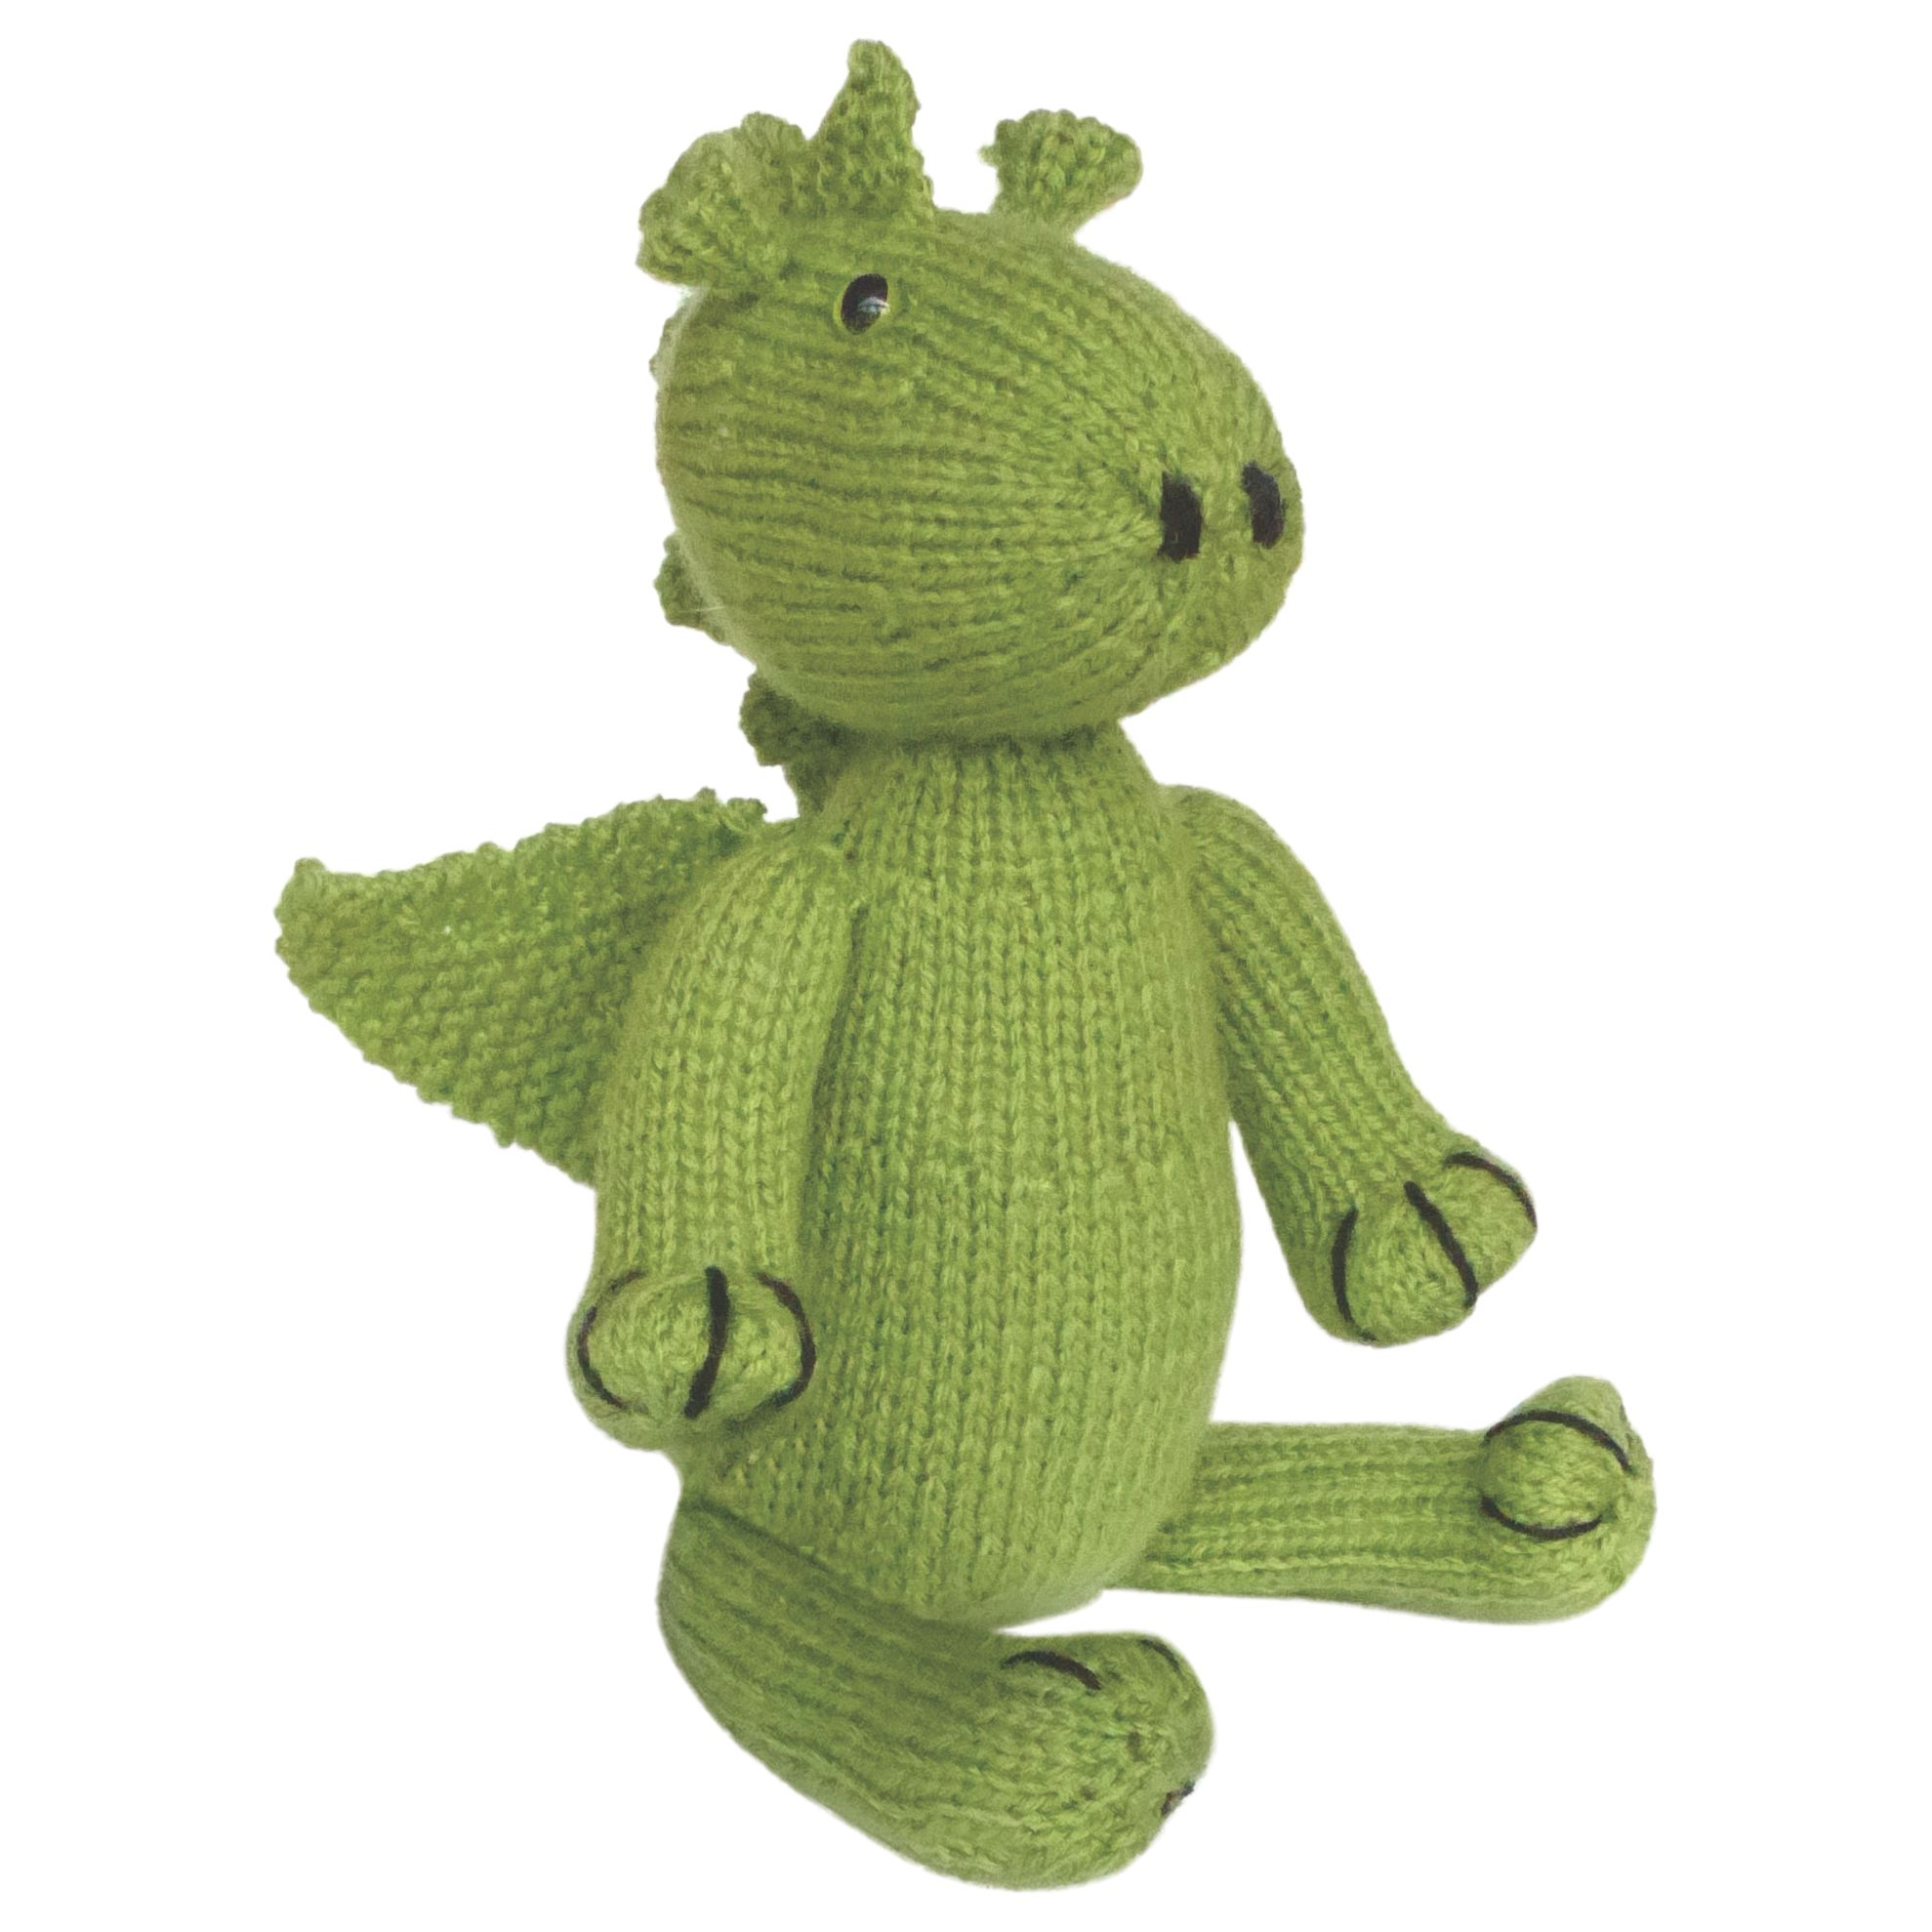 Apples To Pears Apples To Pears Knit Your Own Dragon Knitting Kit